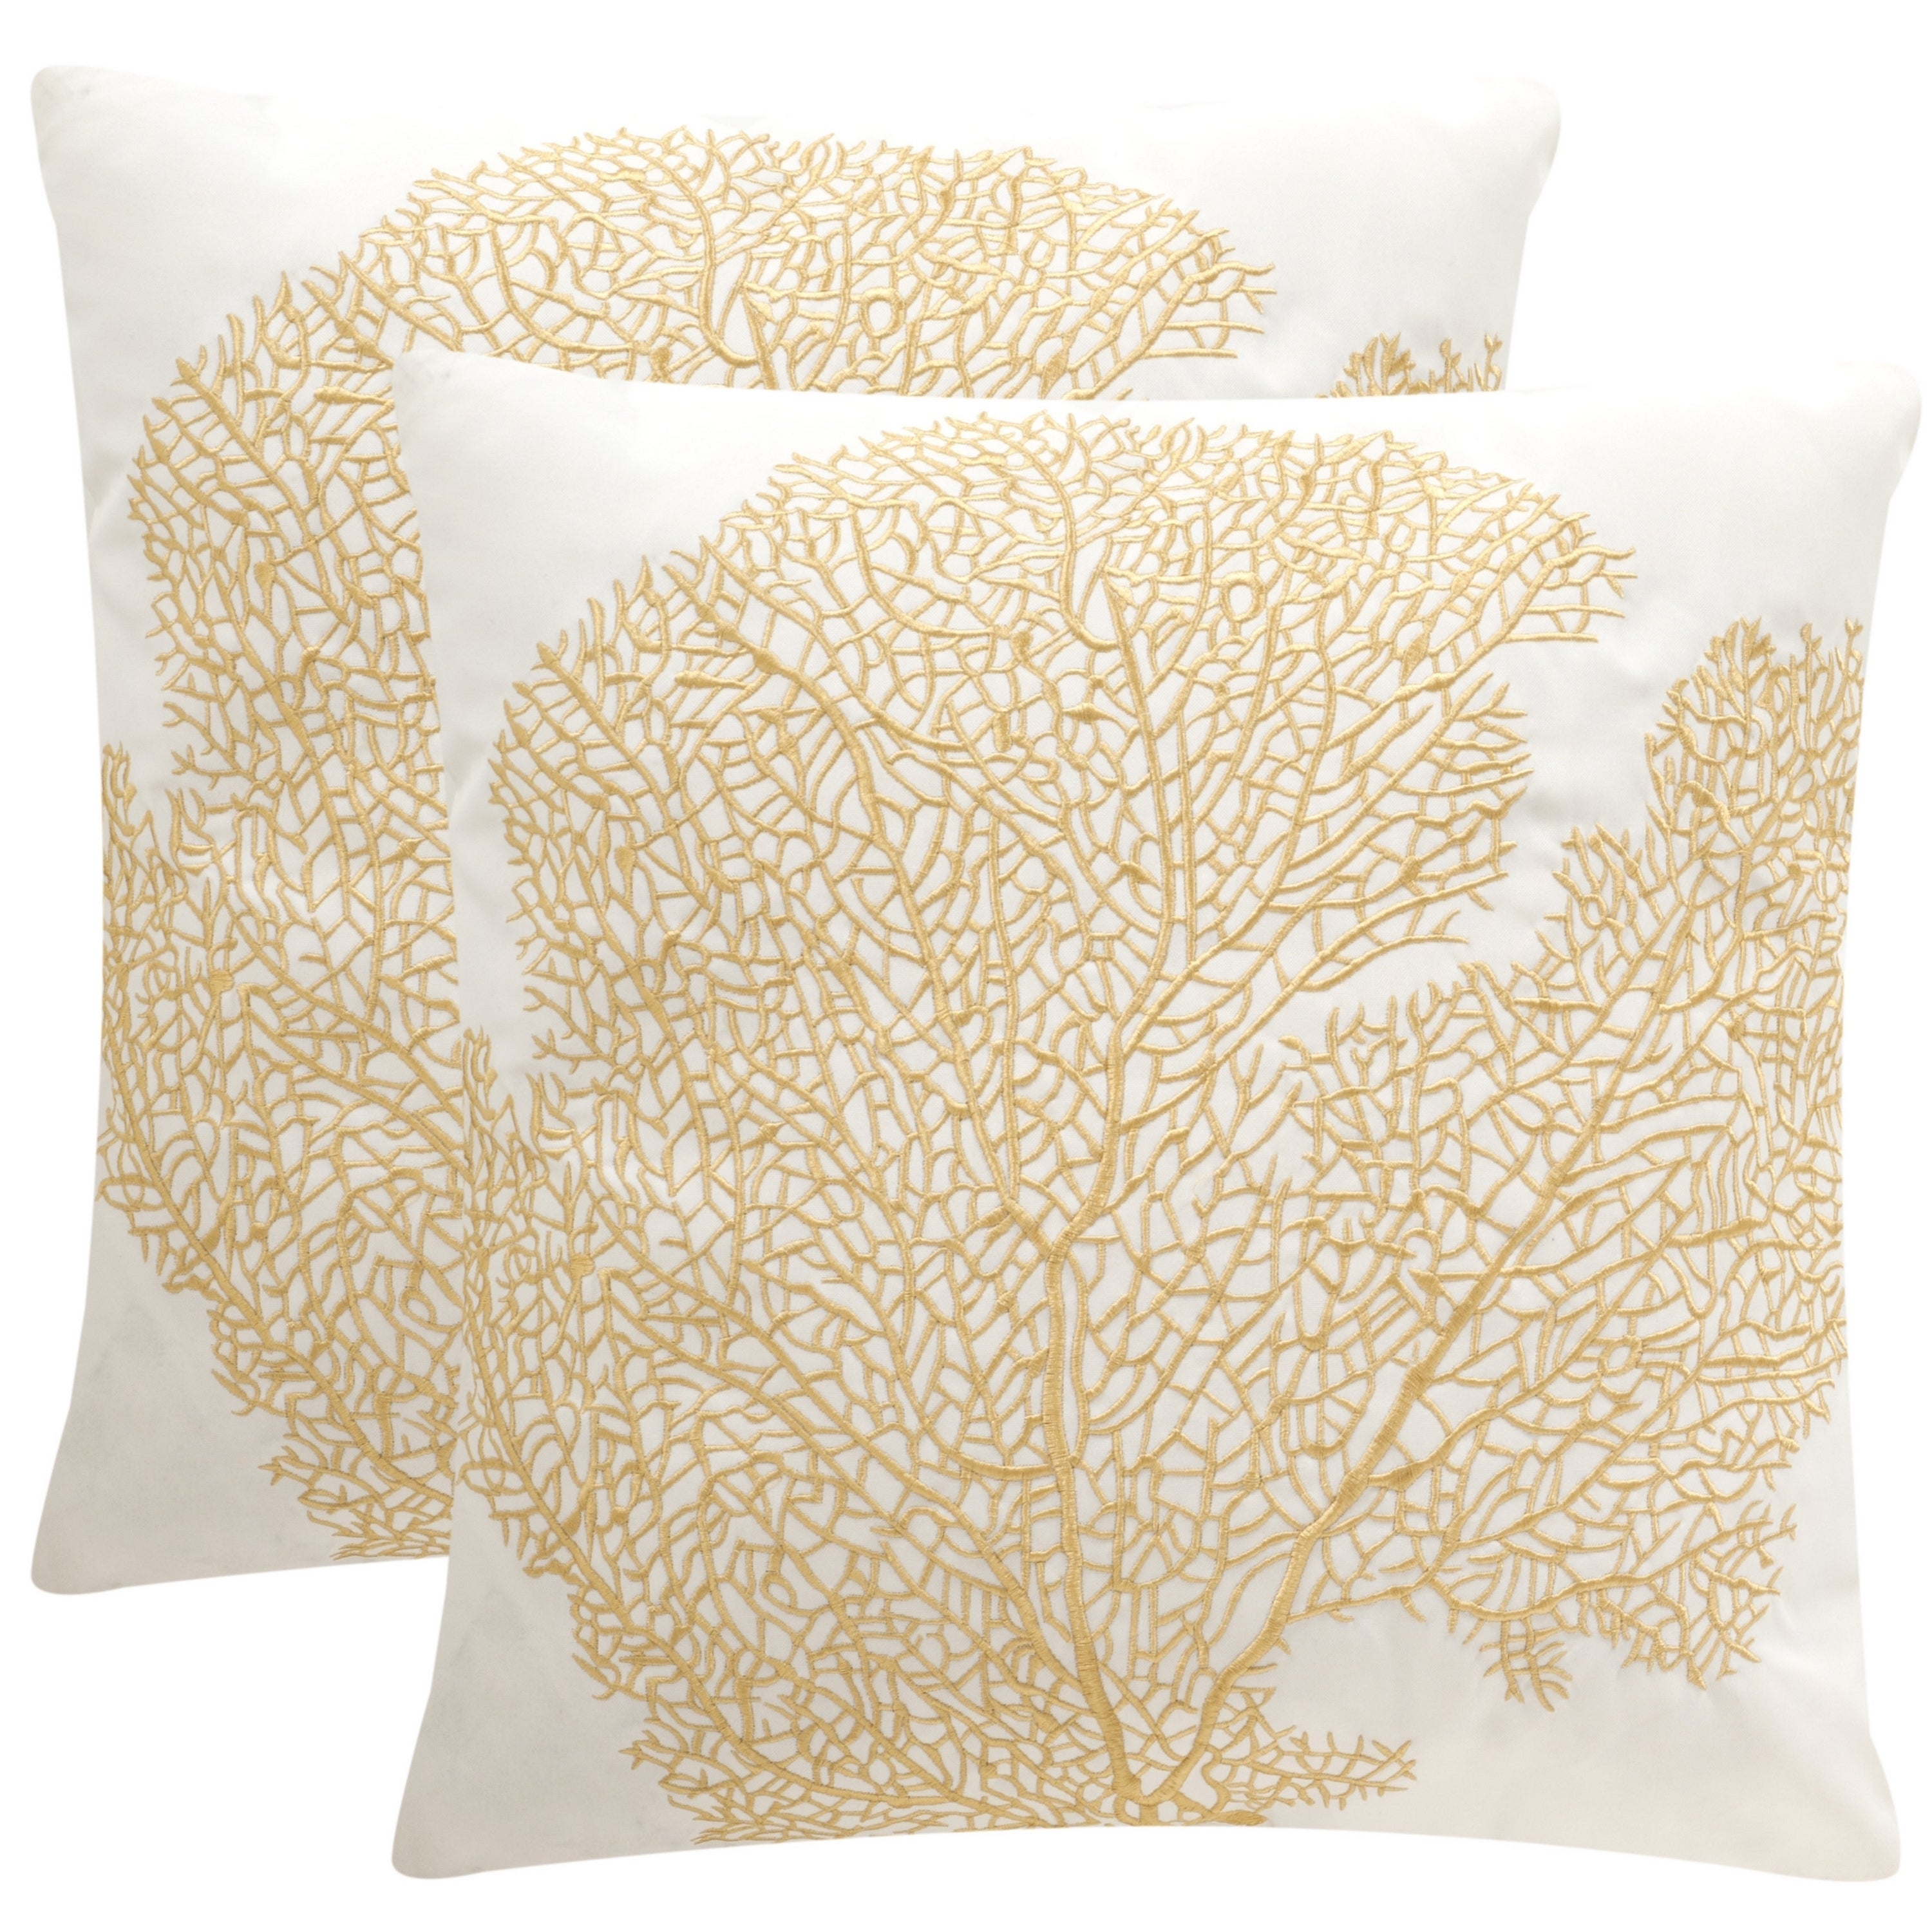 Safavieh Soleil Spice Fan Coral Indoor Outdoor Gold 20 Inch Square